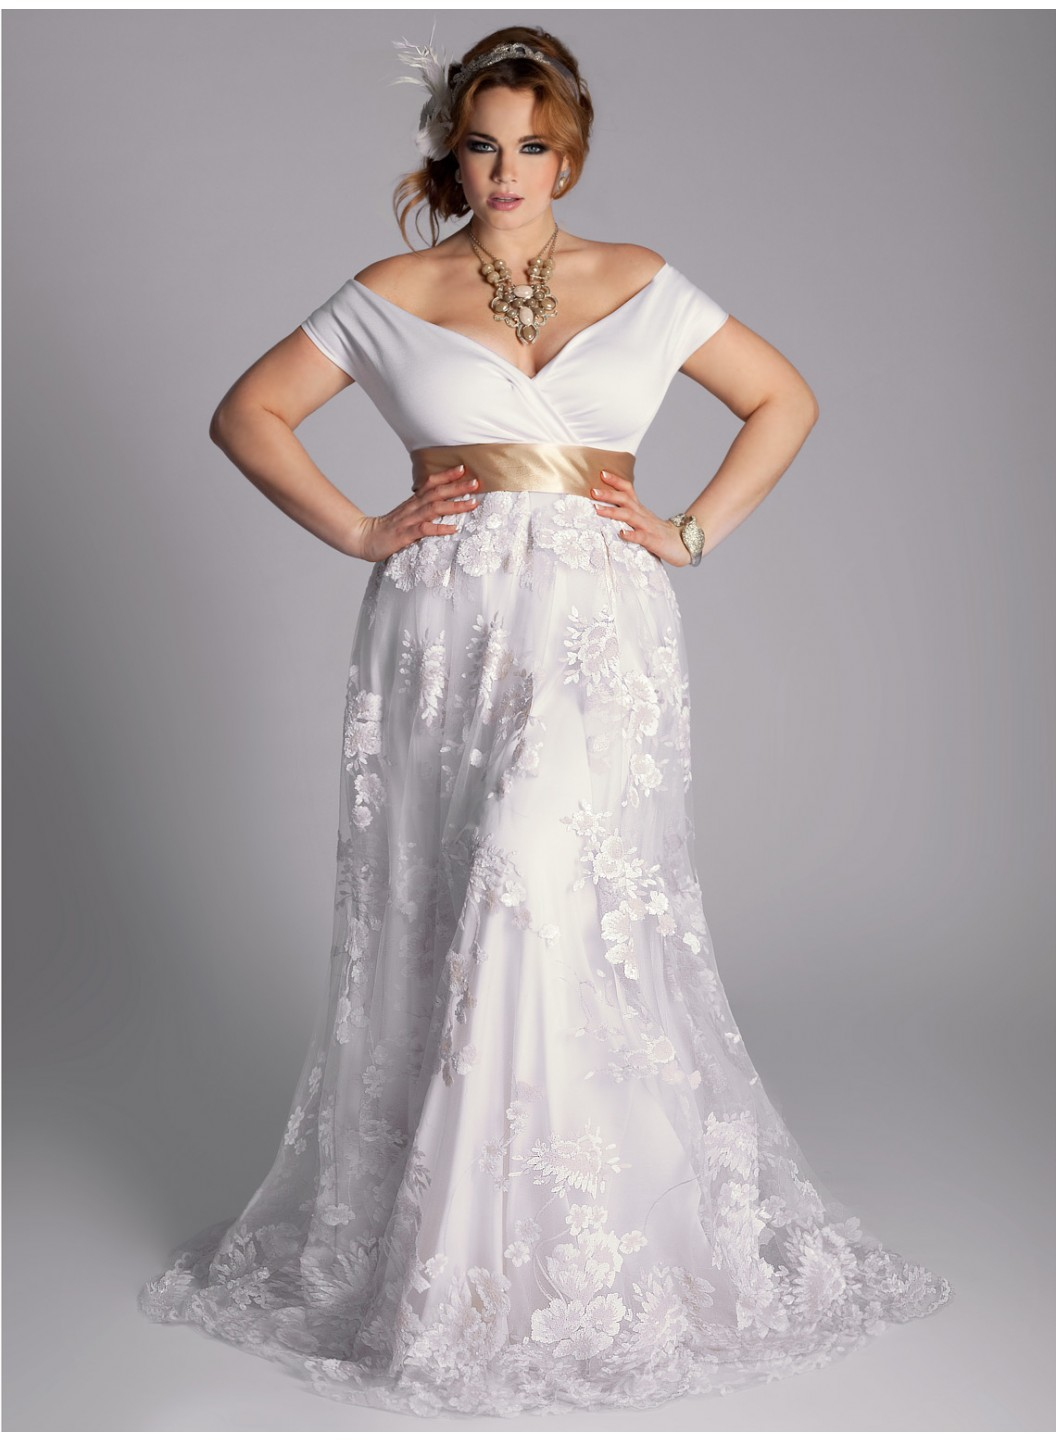 Plus Size Wedding Dresses Cheap Uk 22